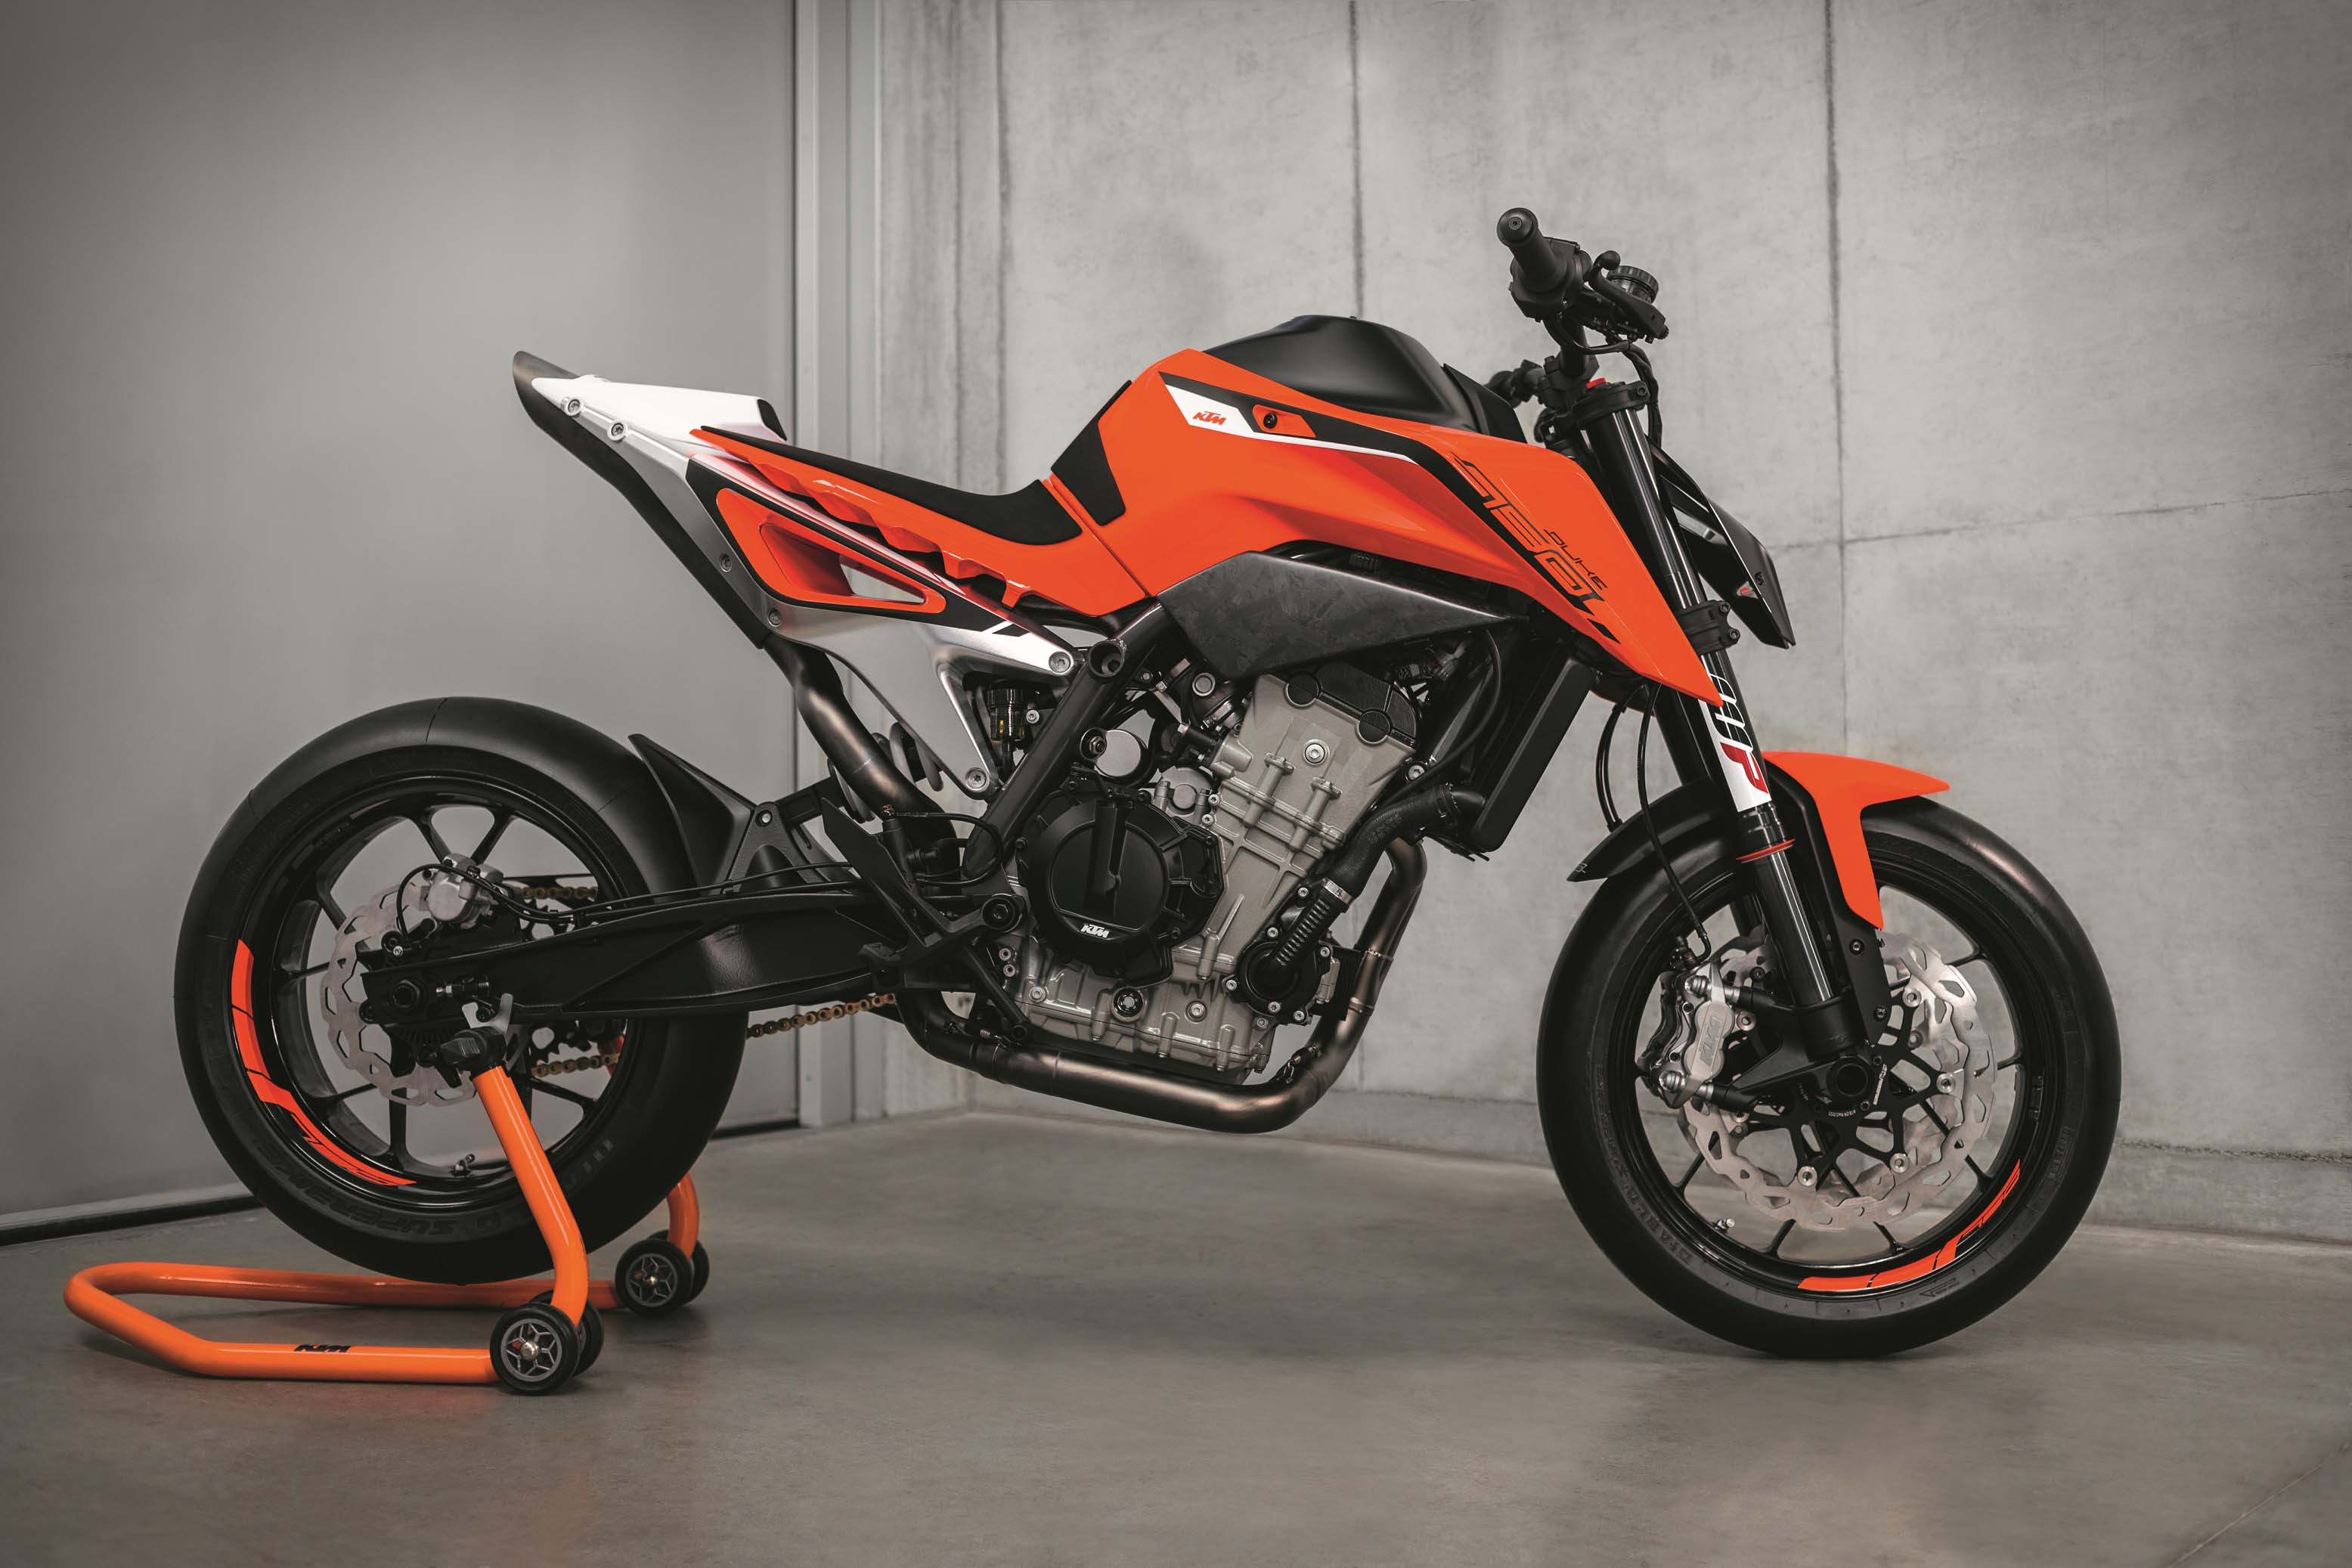 Harley Street 500 >> KTM 790 Duke Prototype Debuts with Parallel-Twin Engine